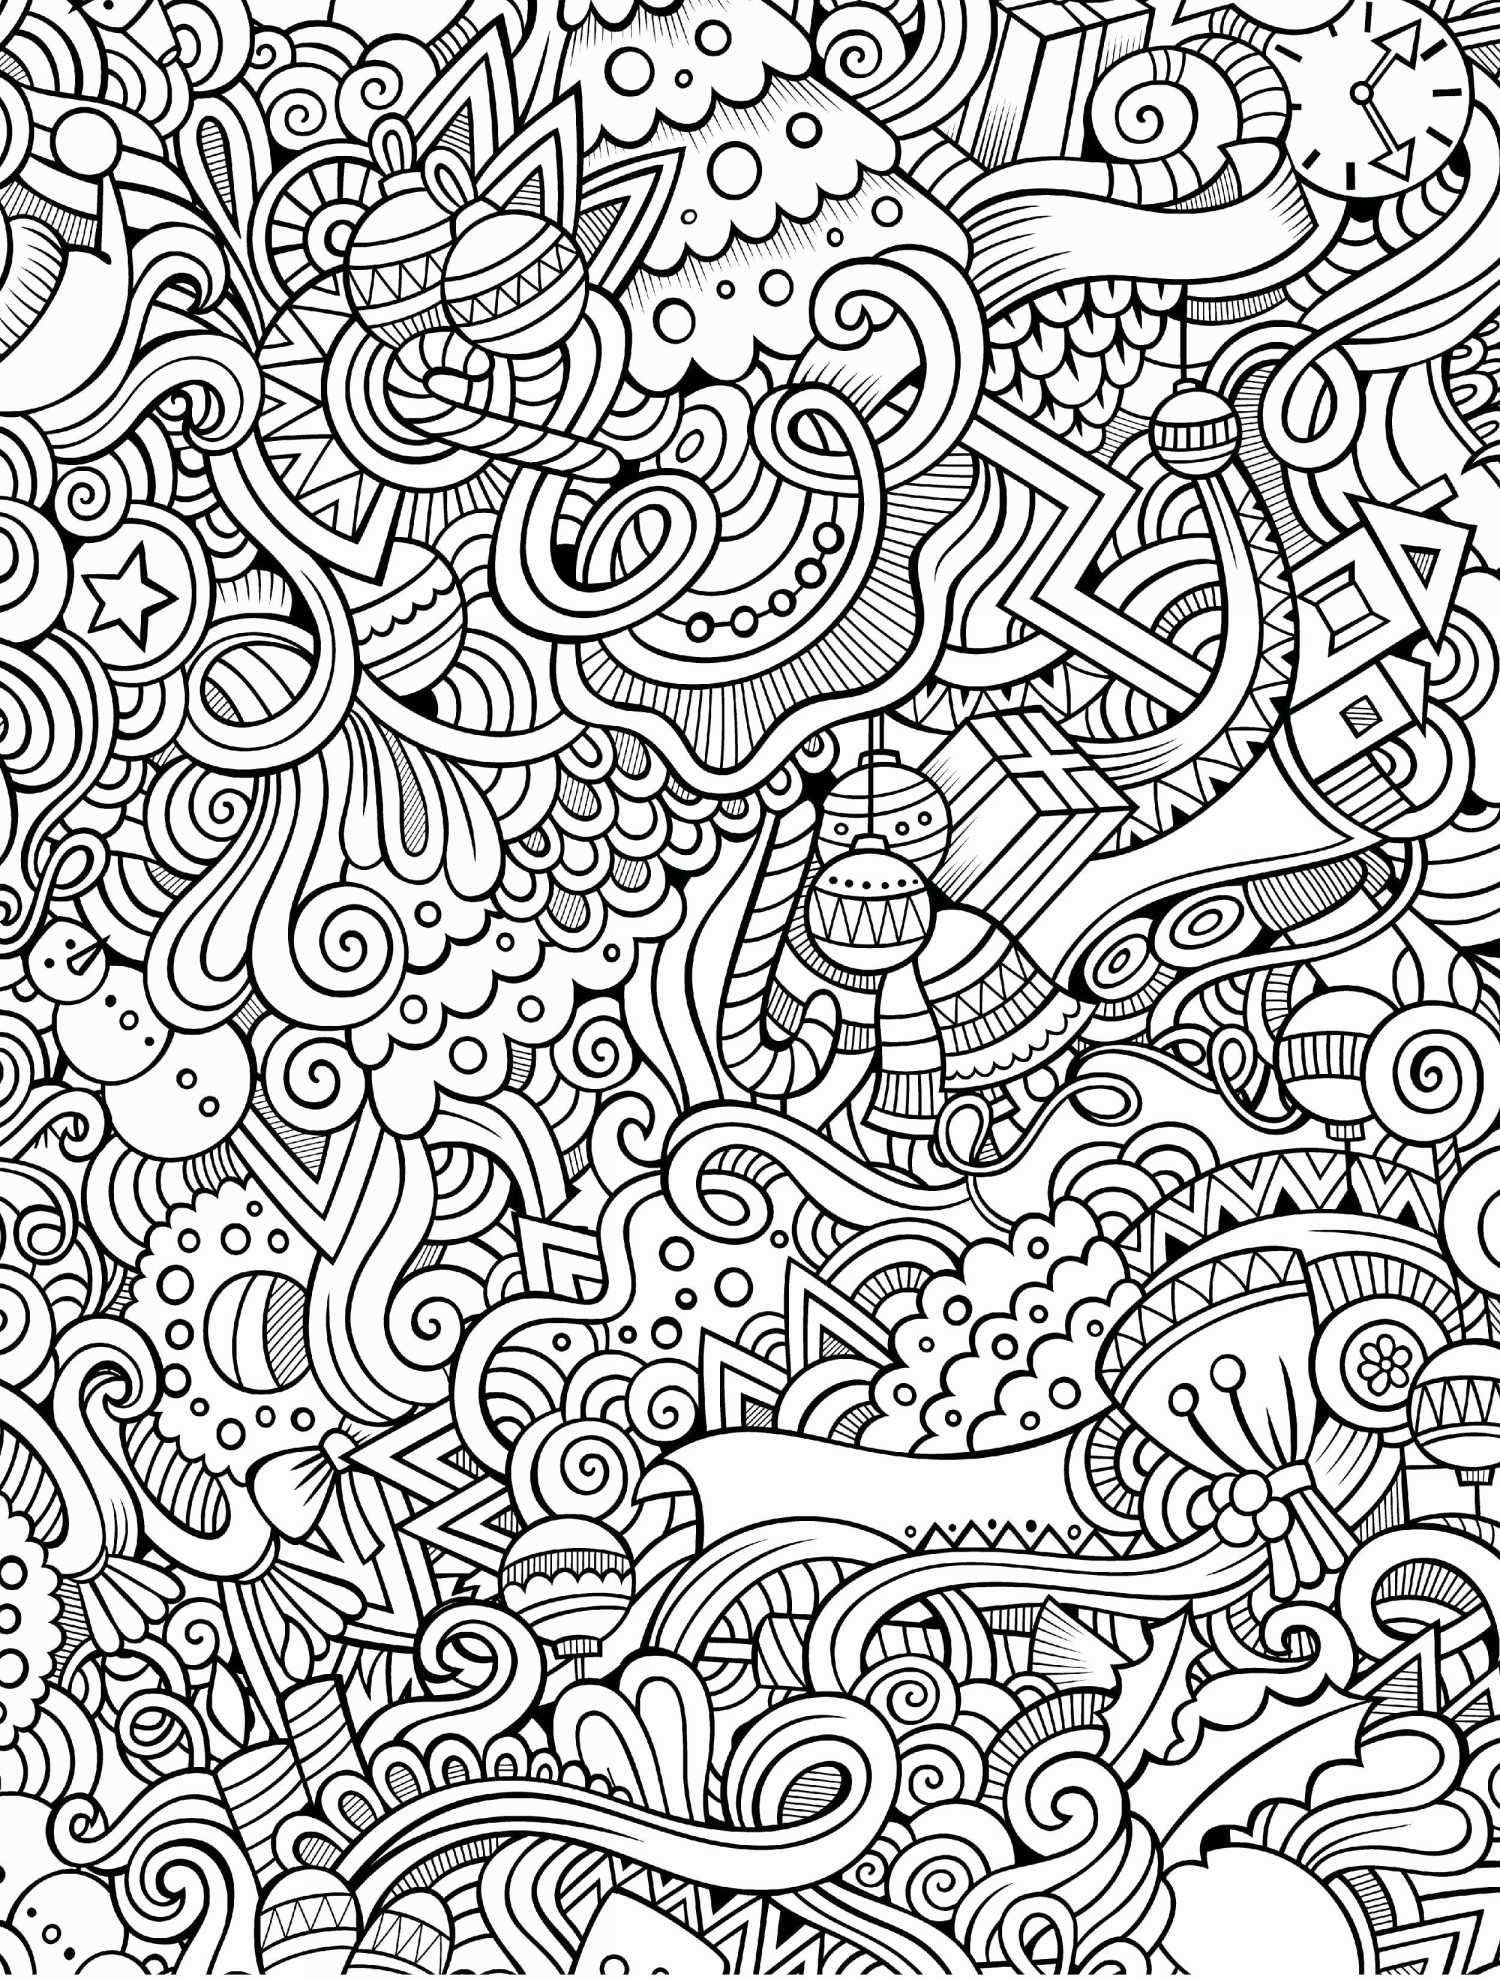 Dallas Cowboys Coloring Pages to